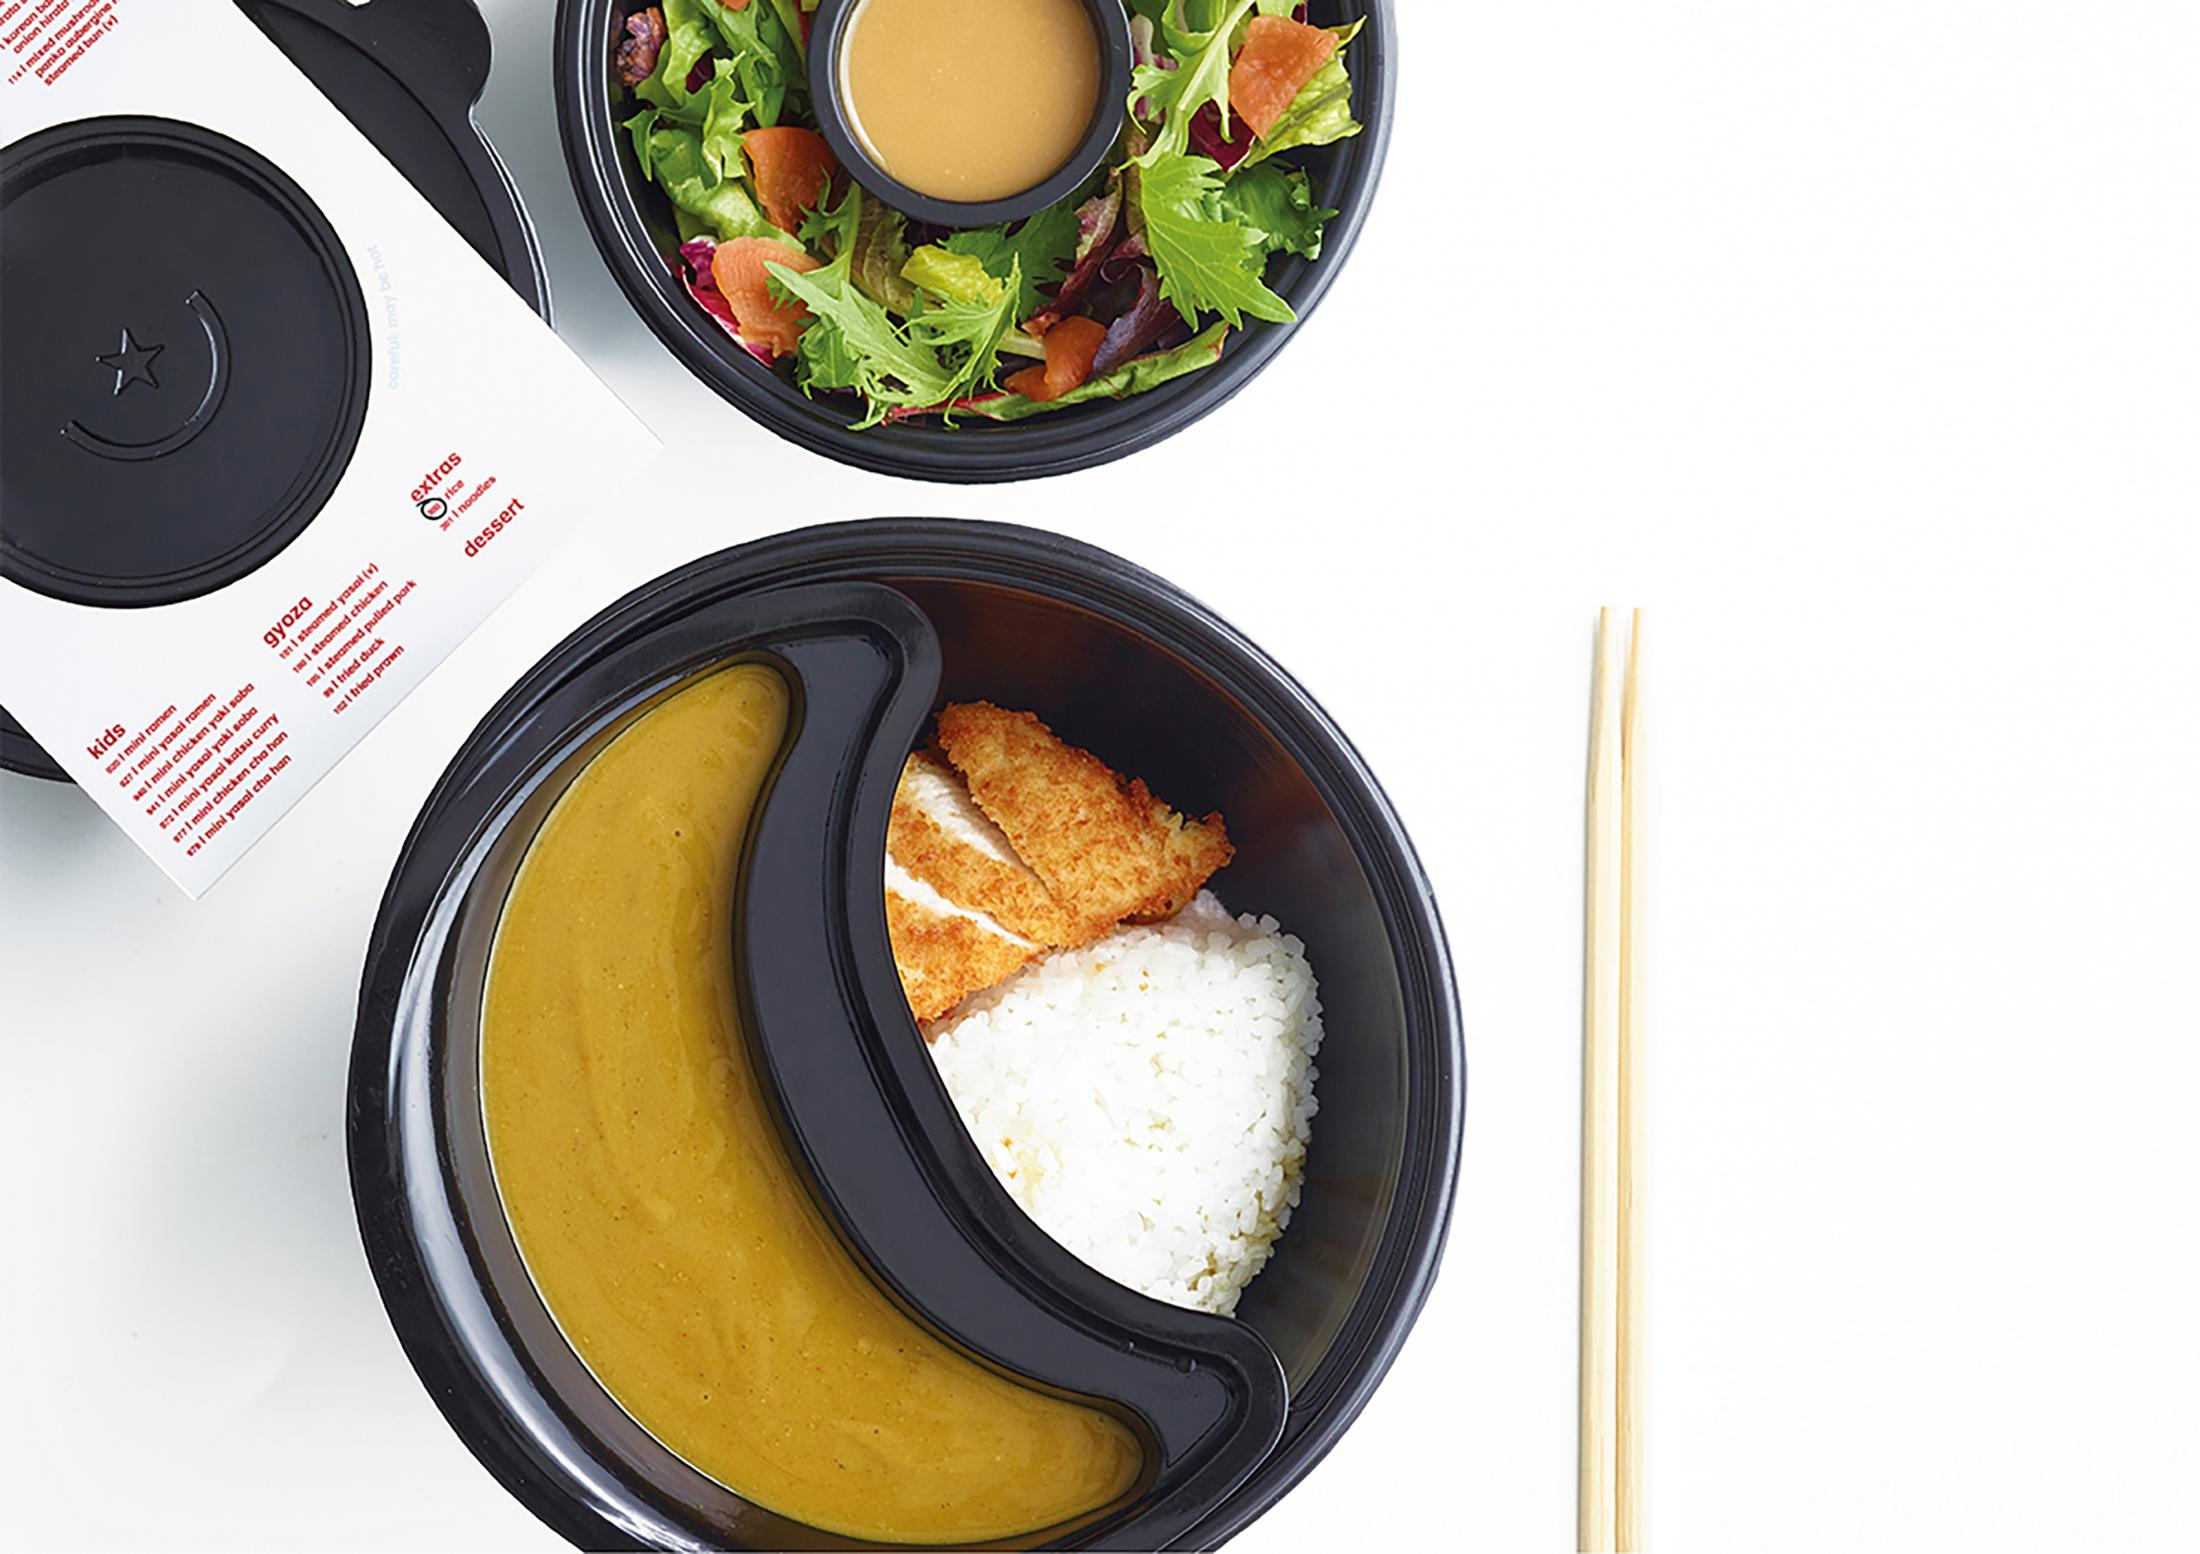 Thumbnail for Wagamama Takeout Experience